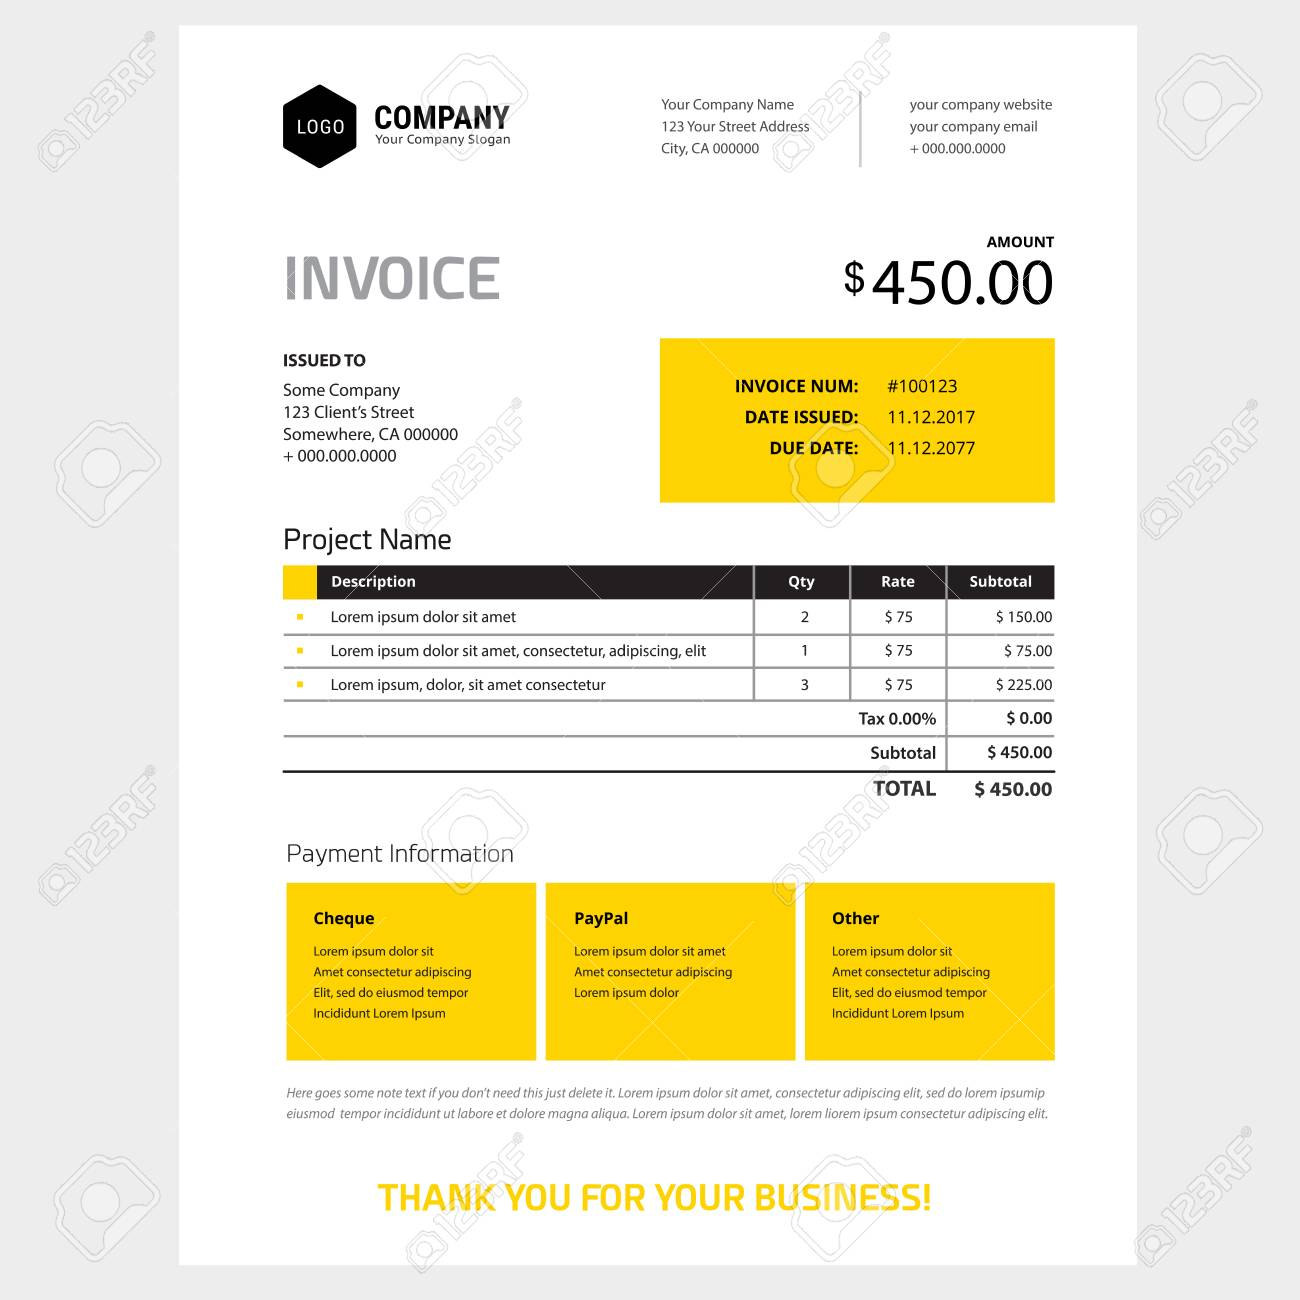 Invoice Form Design Template In Yellow And Black Color Scheme